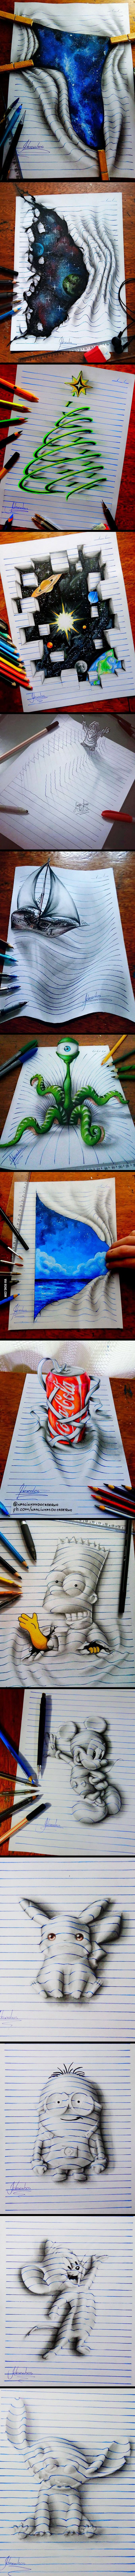 25 best ideas about 3d art on paper on pinterest 3d for Architecture students 9gag